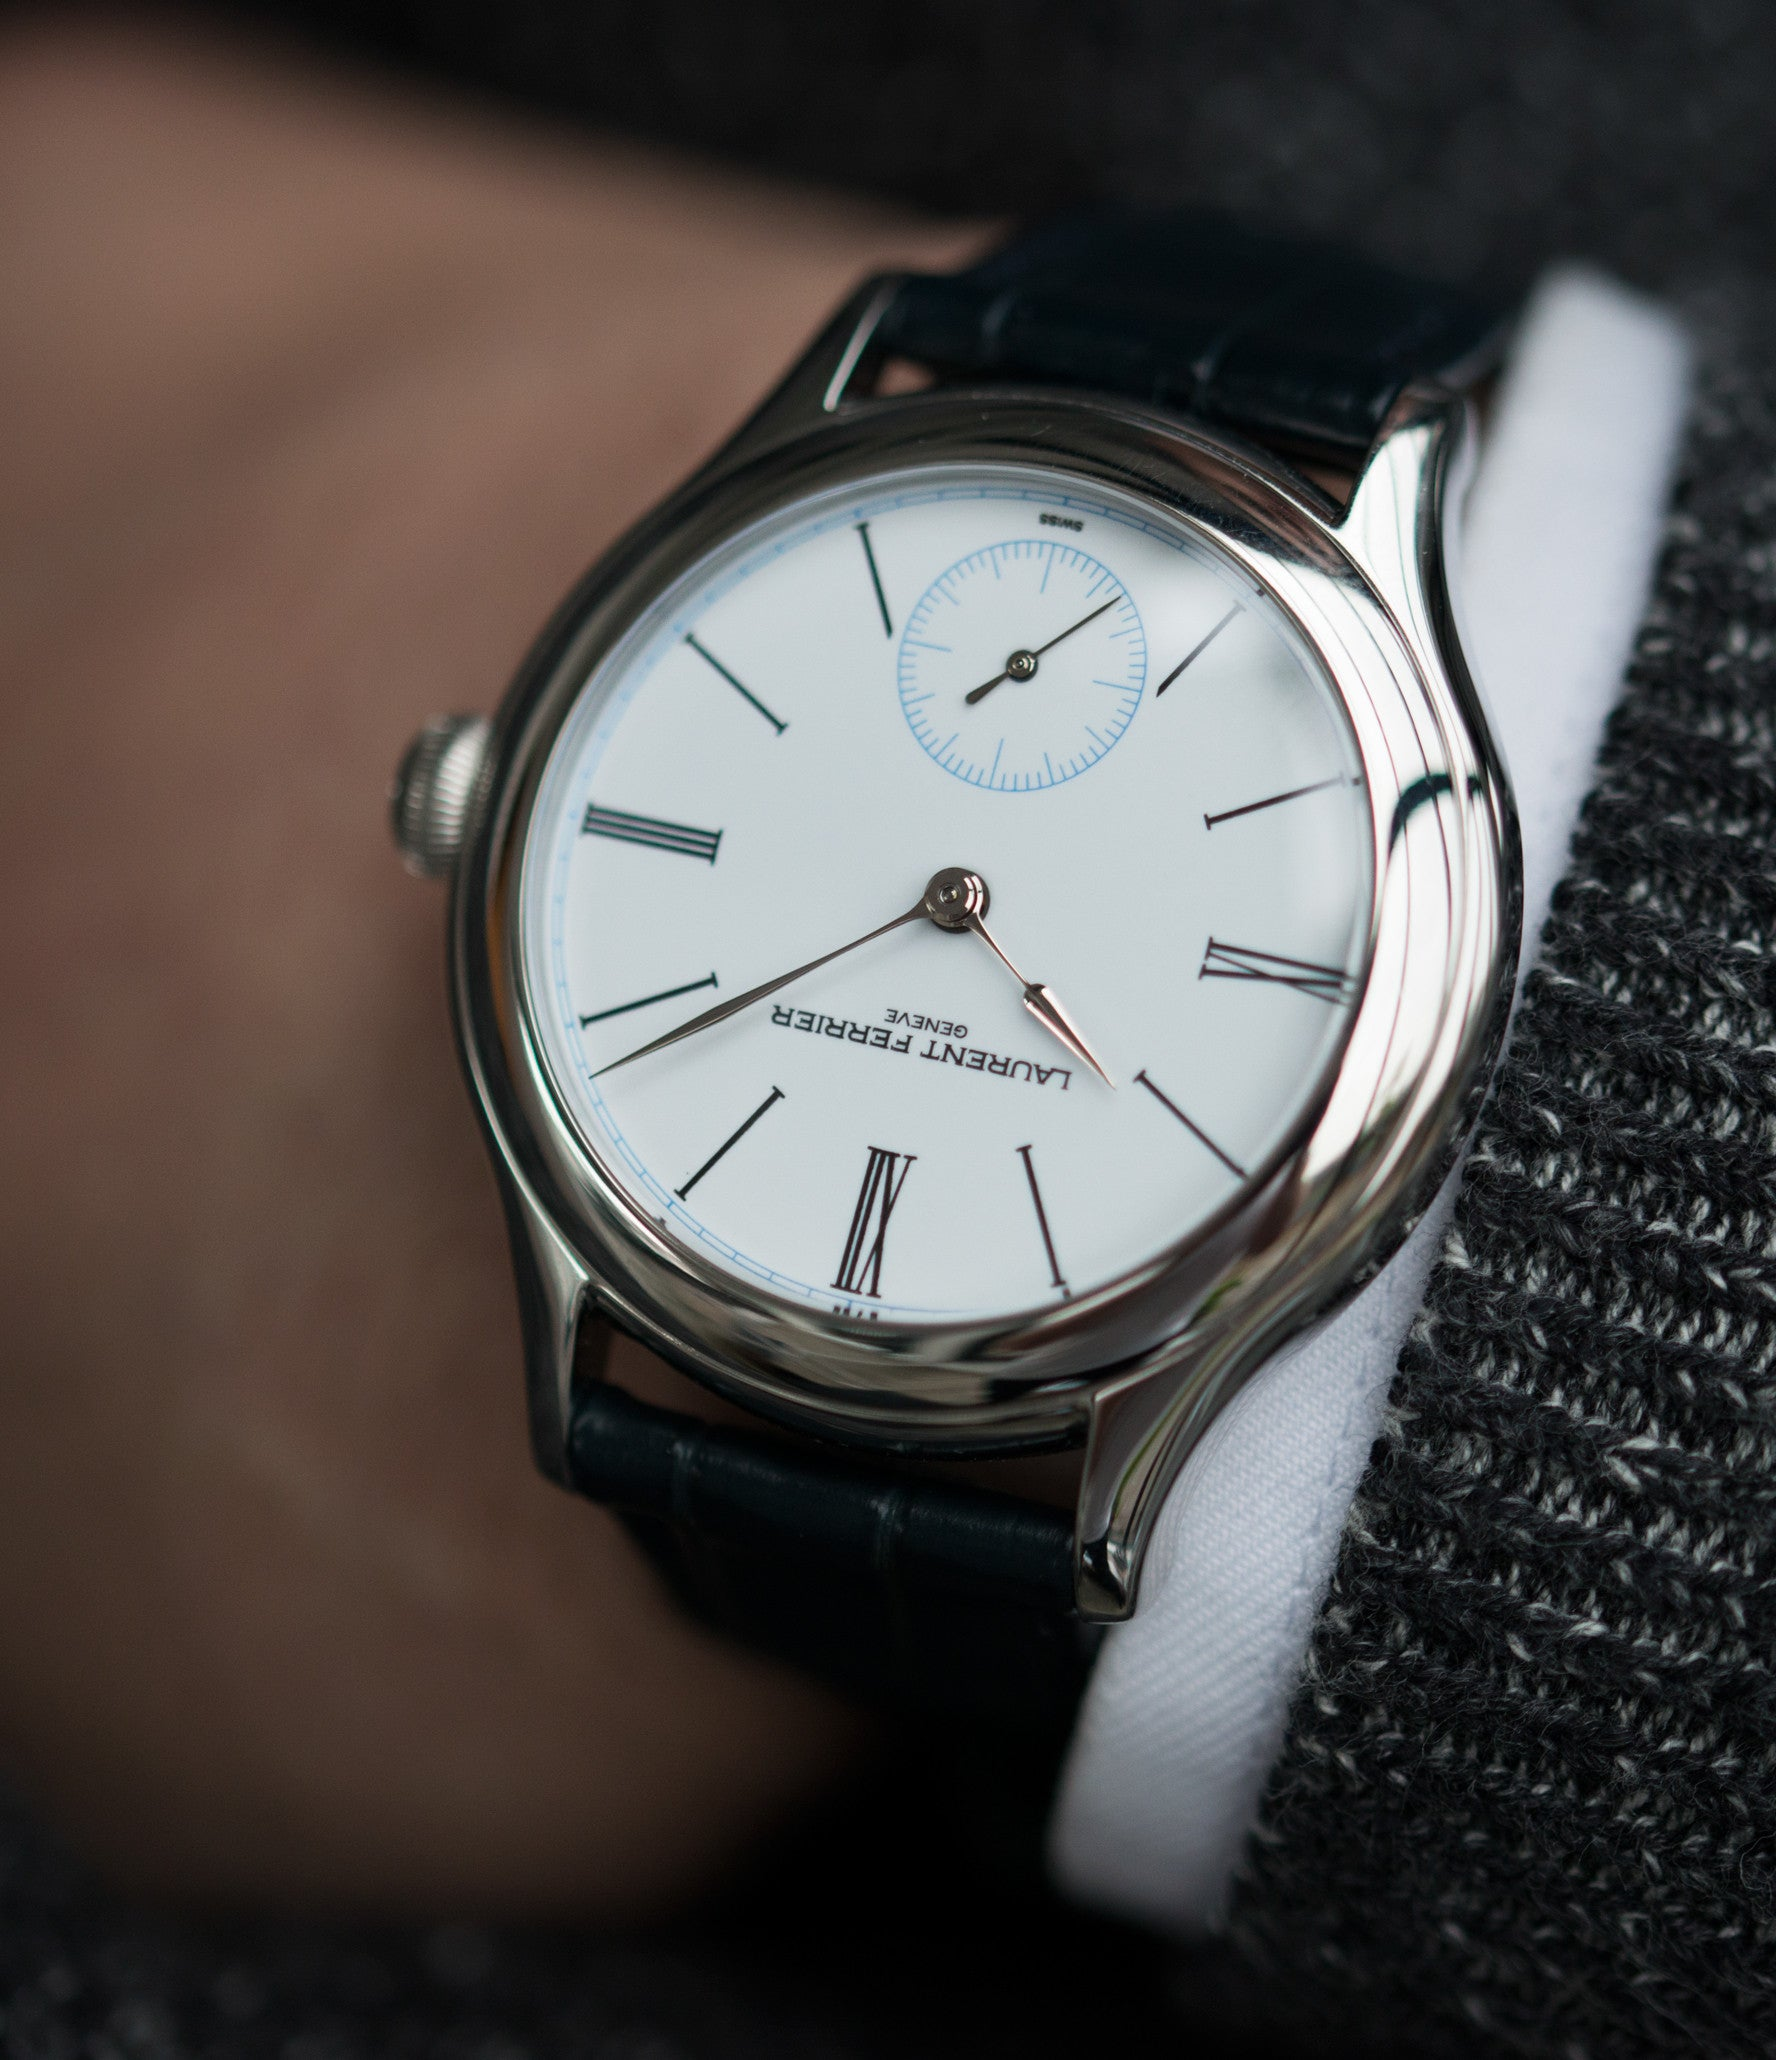 buy time-only dress watch Laurent Ferrier Galet Micro-rotor LCF006 platinum enamel dial limited edition watch for sale online at A Collected Man London specialist independent watchmakers